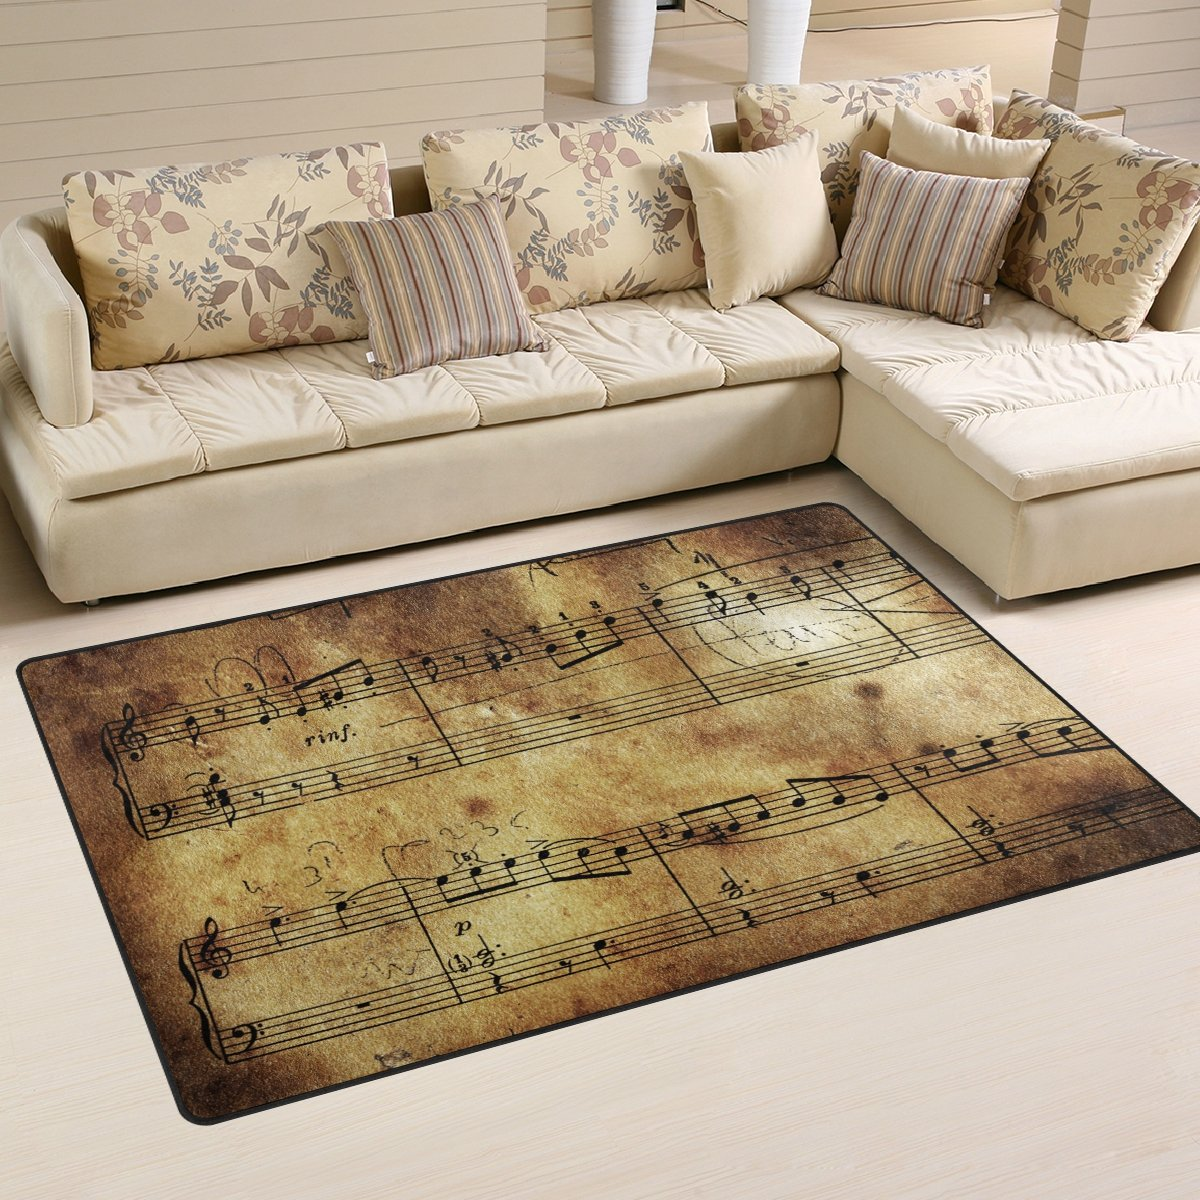 Naanle Music Area Rug 3 x5 , Vintage Retro Music Note Polyester Area Rug Mat for Living Dining Dorm Room Bedroom Home Decorative